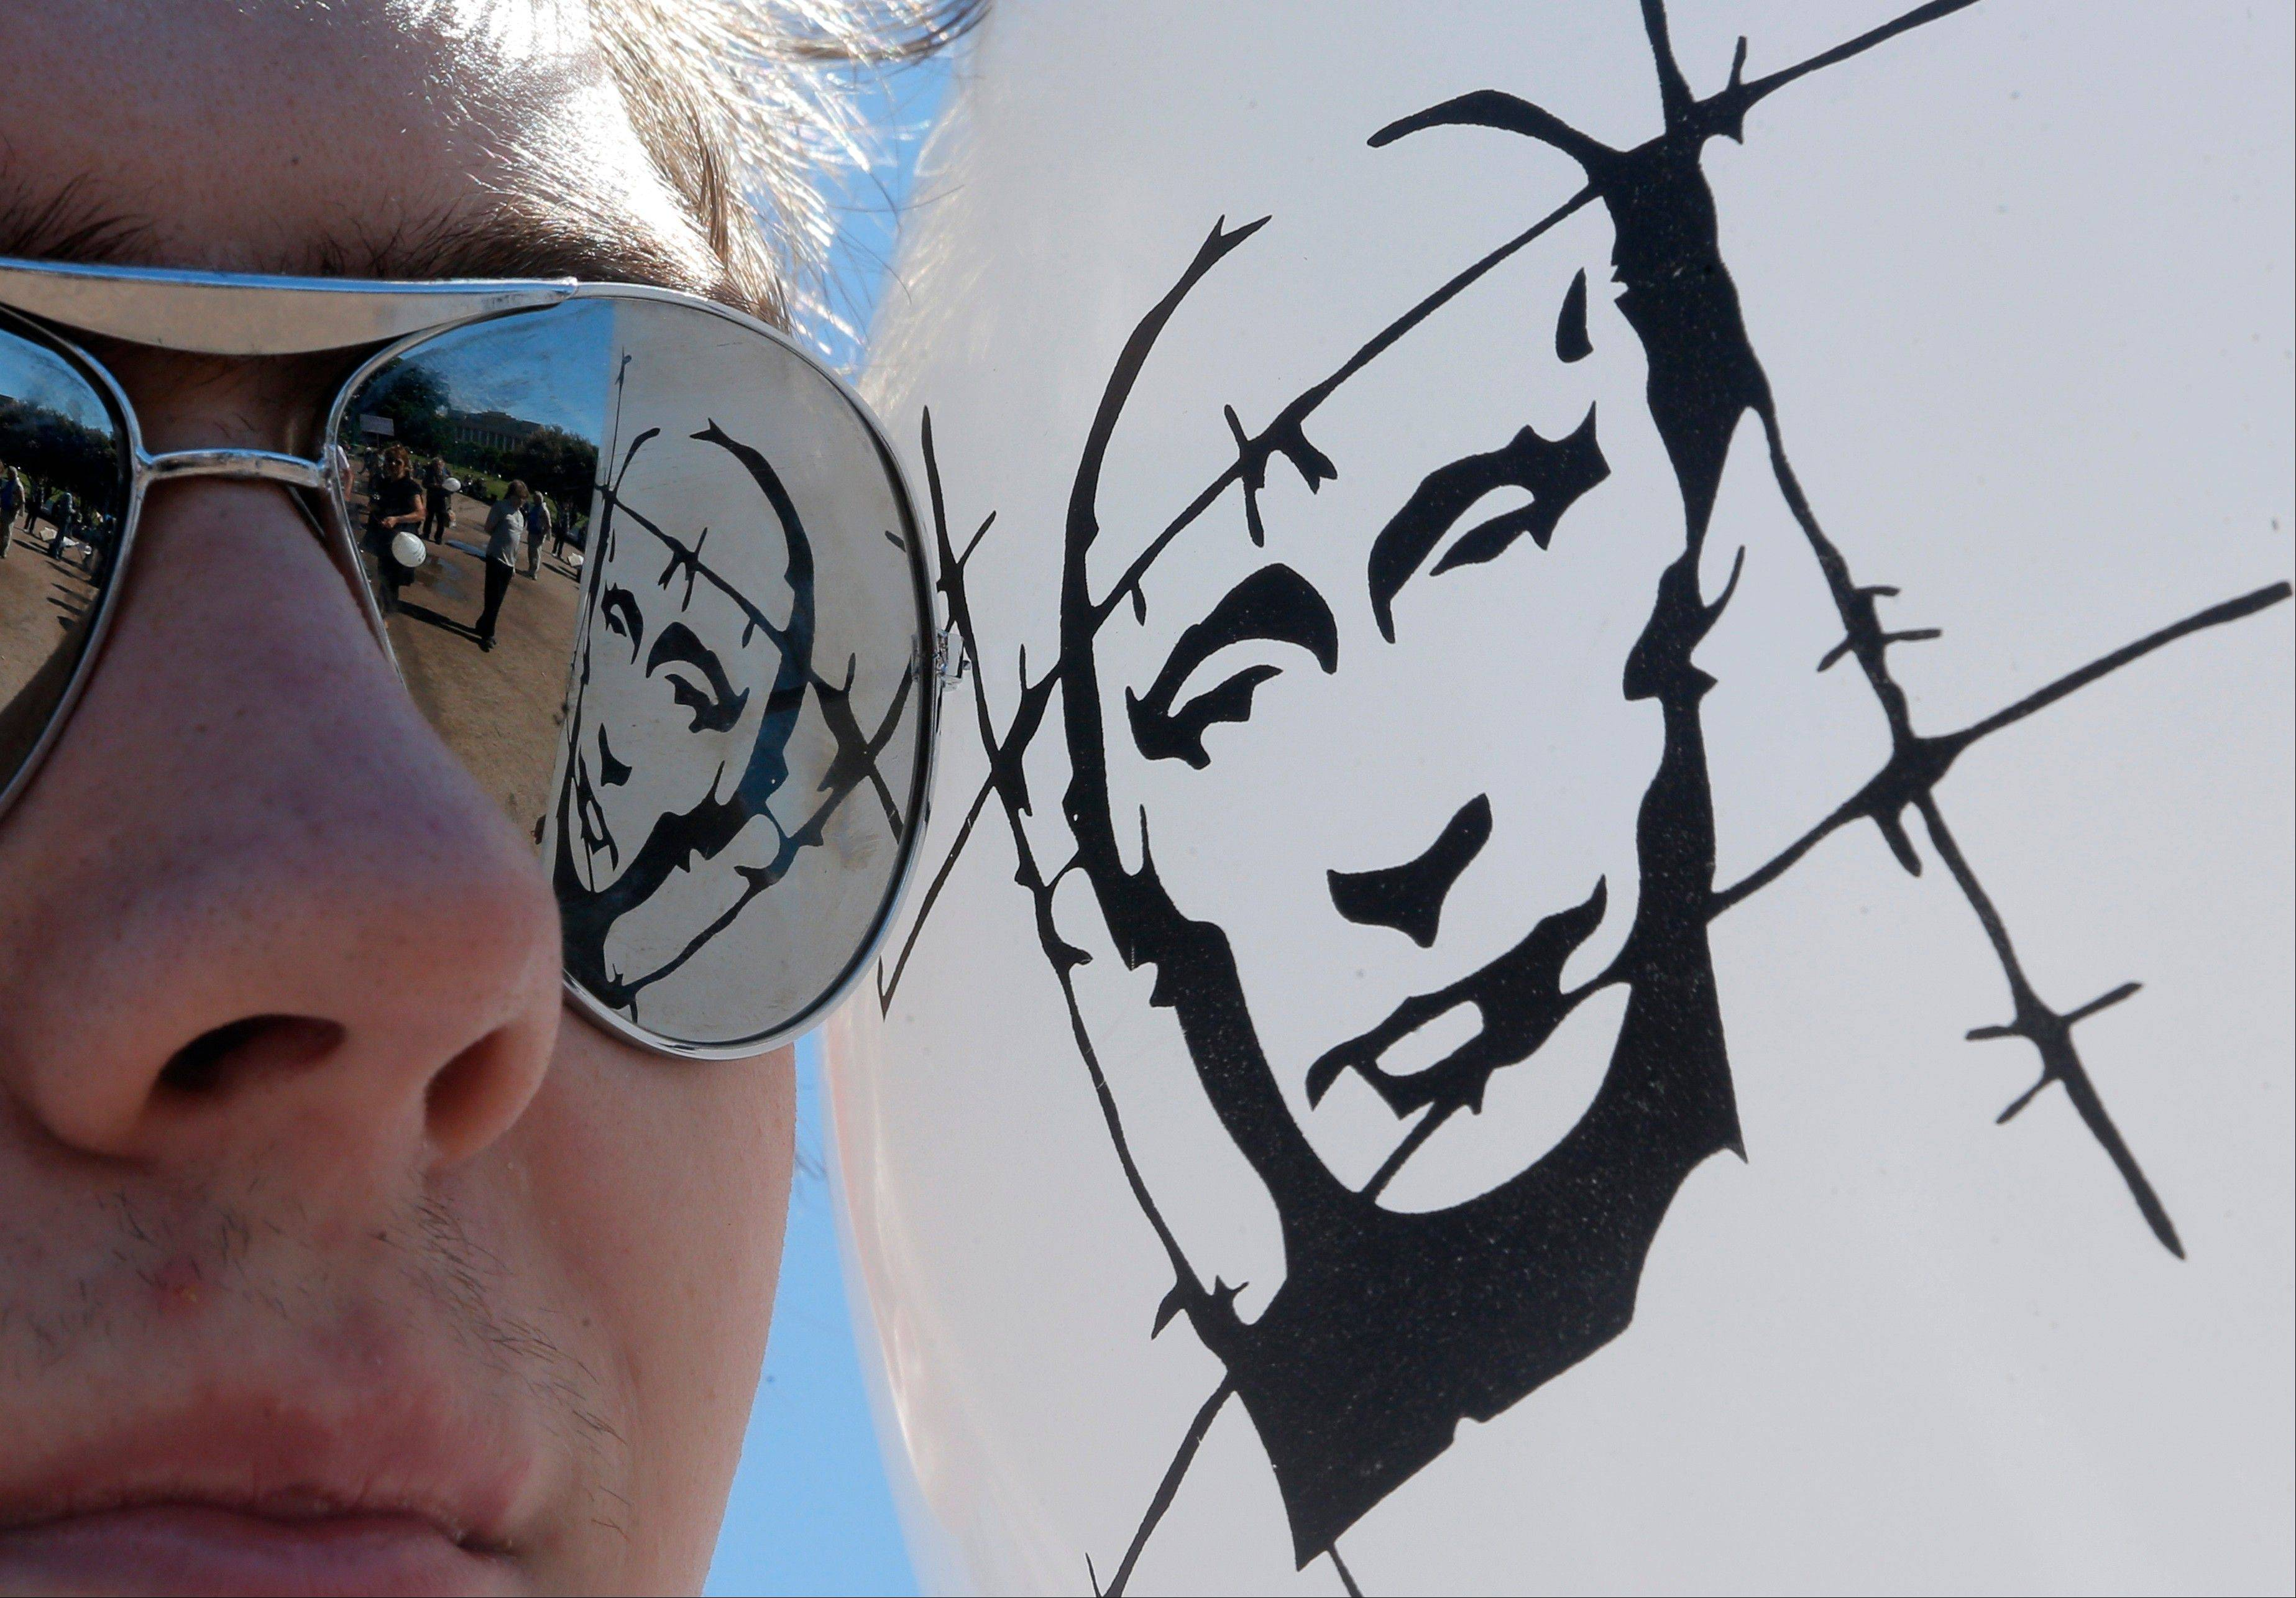 A balloon depicting Russian President Vladimir Putin behind barbed wire, reflects in glasses of an opposition protester during a protest rally in St. Petersburg, Russia, Wednesday, June 12, 2013. Wednesday�s rally is in support of 27 people who face charges related to a protest that turned violent on the eve of Putin�s inauguration more than a year ago.